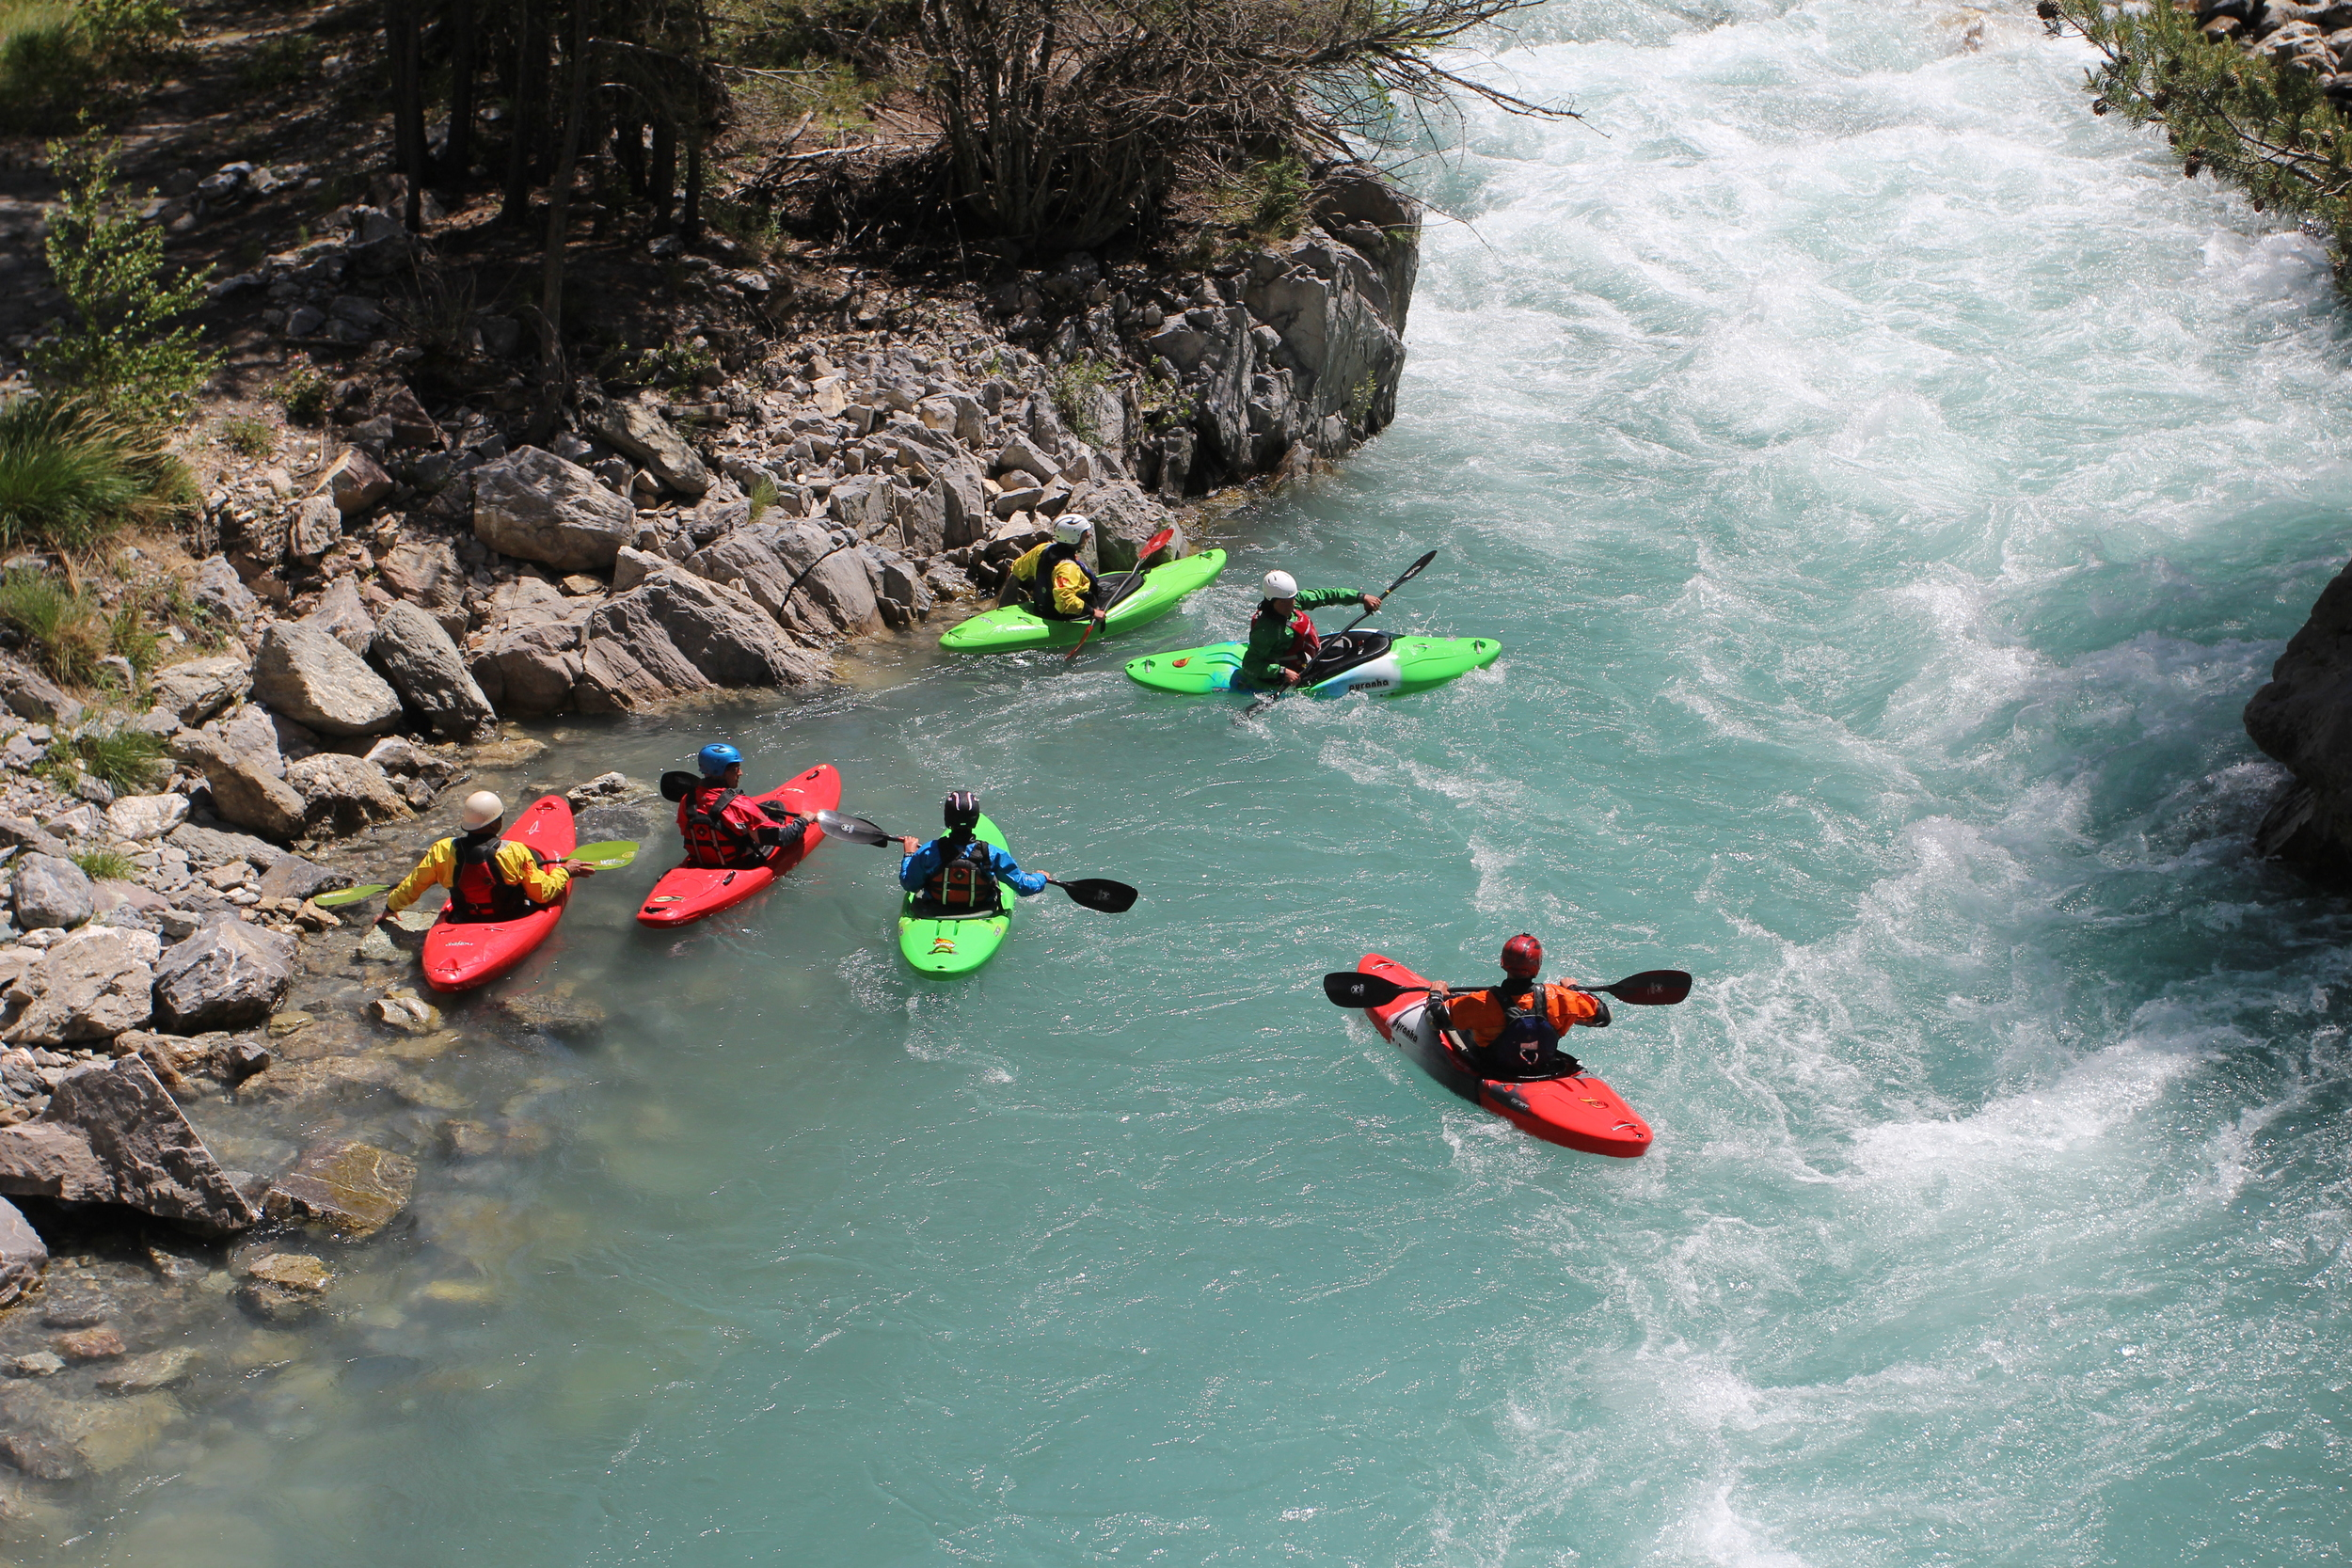 A team of paddlers working together on the River Guil in the French Alps